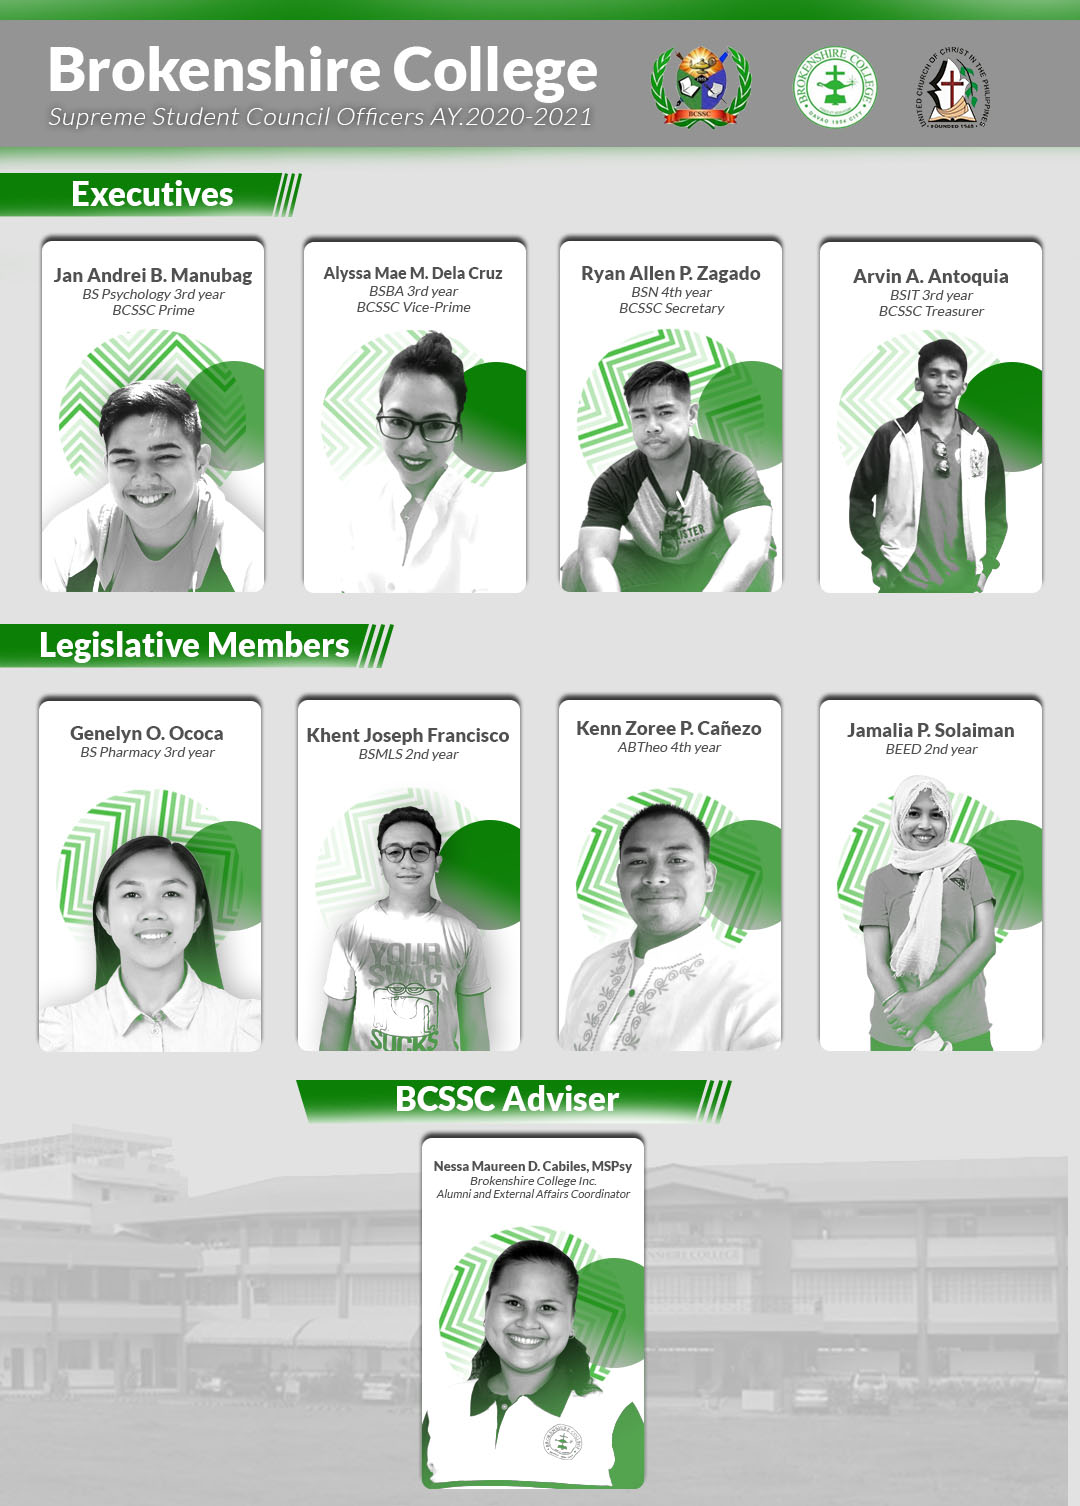 The BCSSC AY 2020-2021